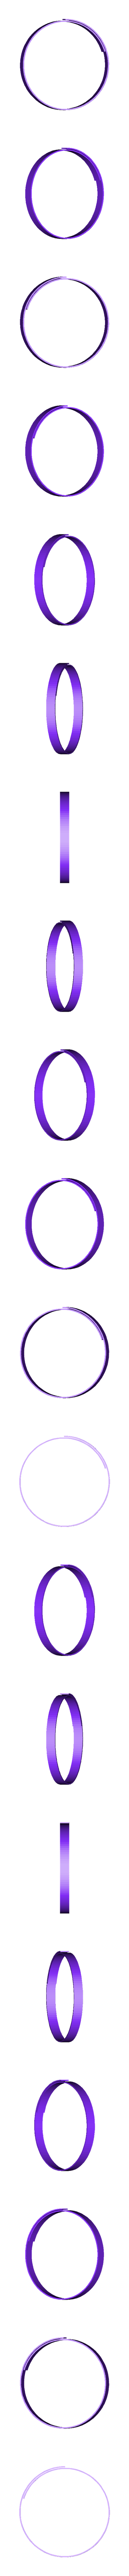 60x6mm_band.stl Download free SCAD file Customizable Spiral Generator • Model to 3D print, WalterHsiao